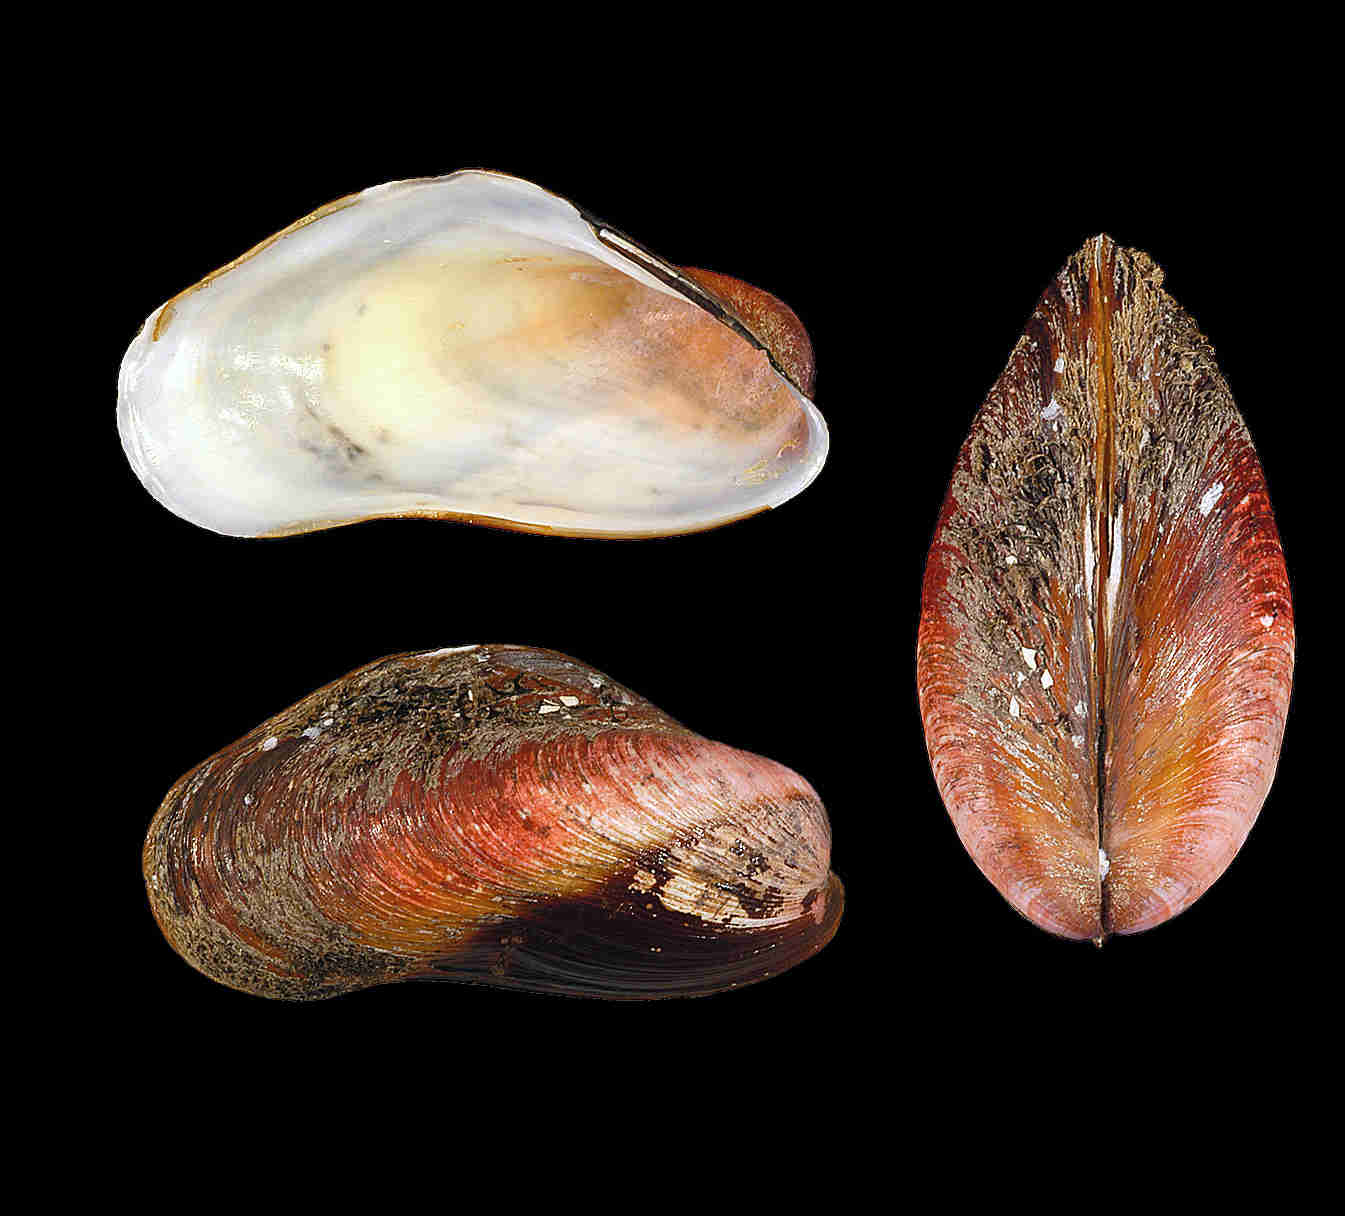 American Horse Mussel